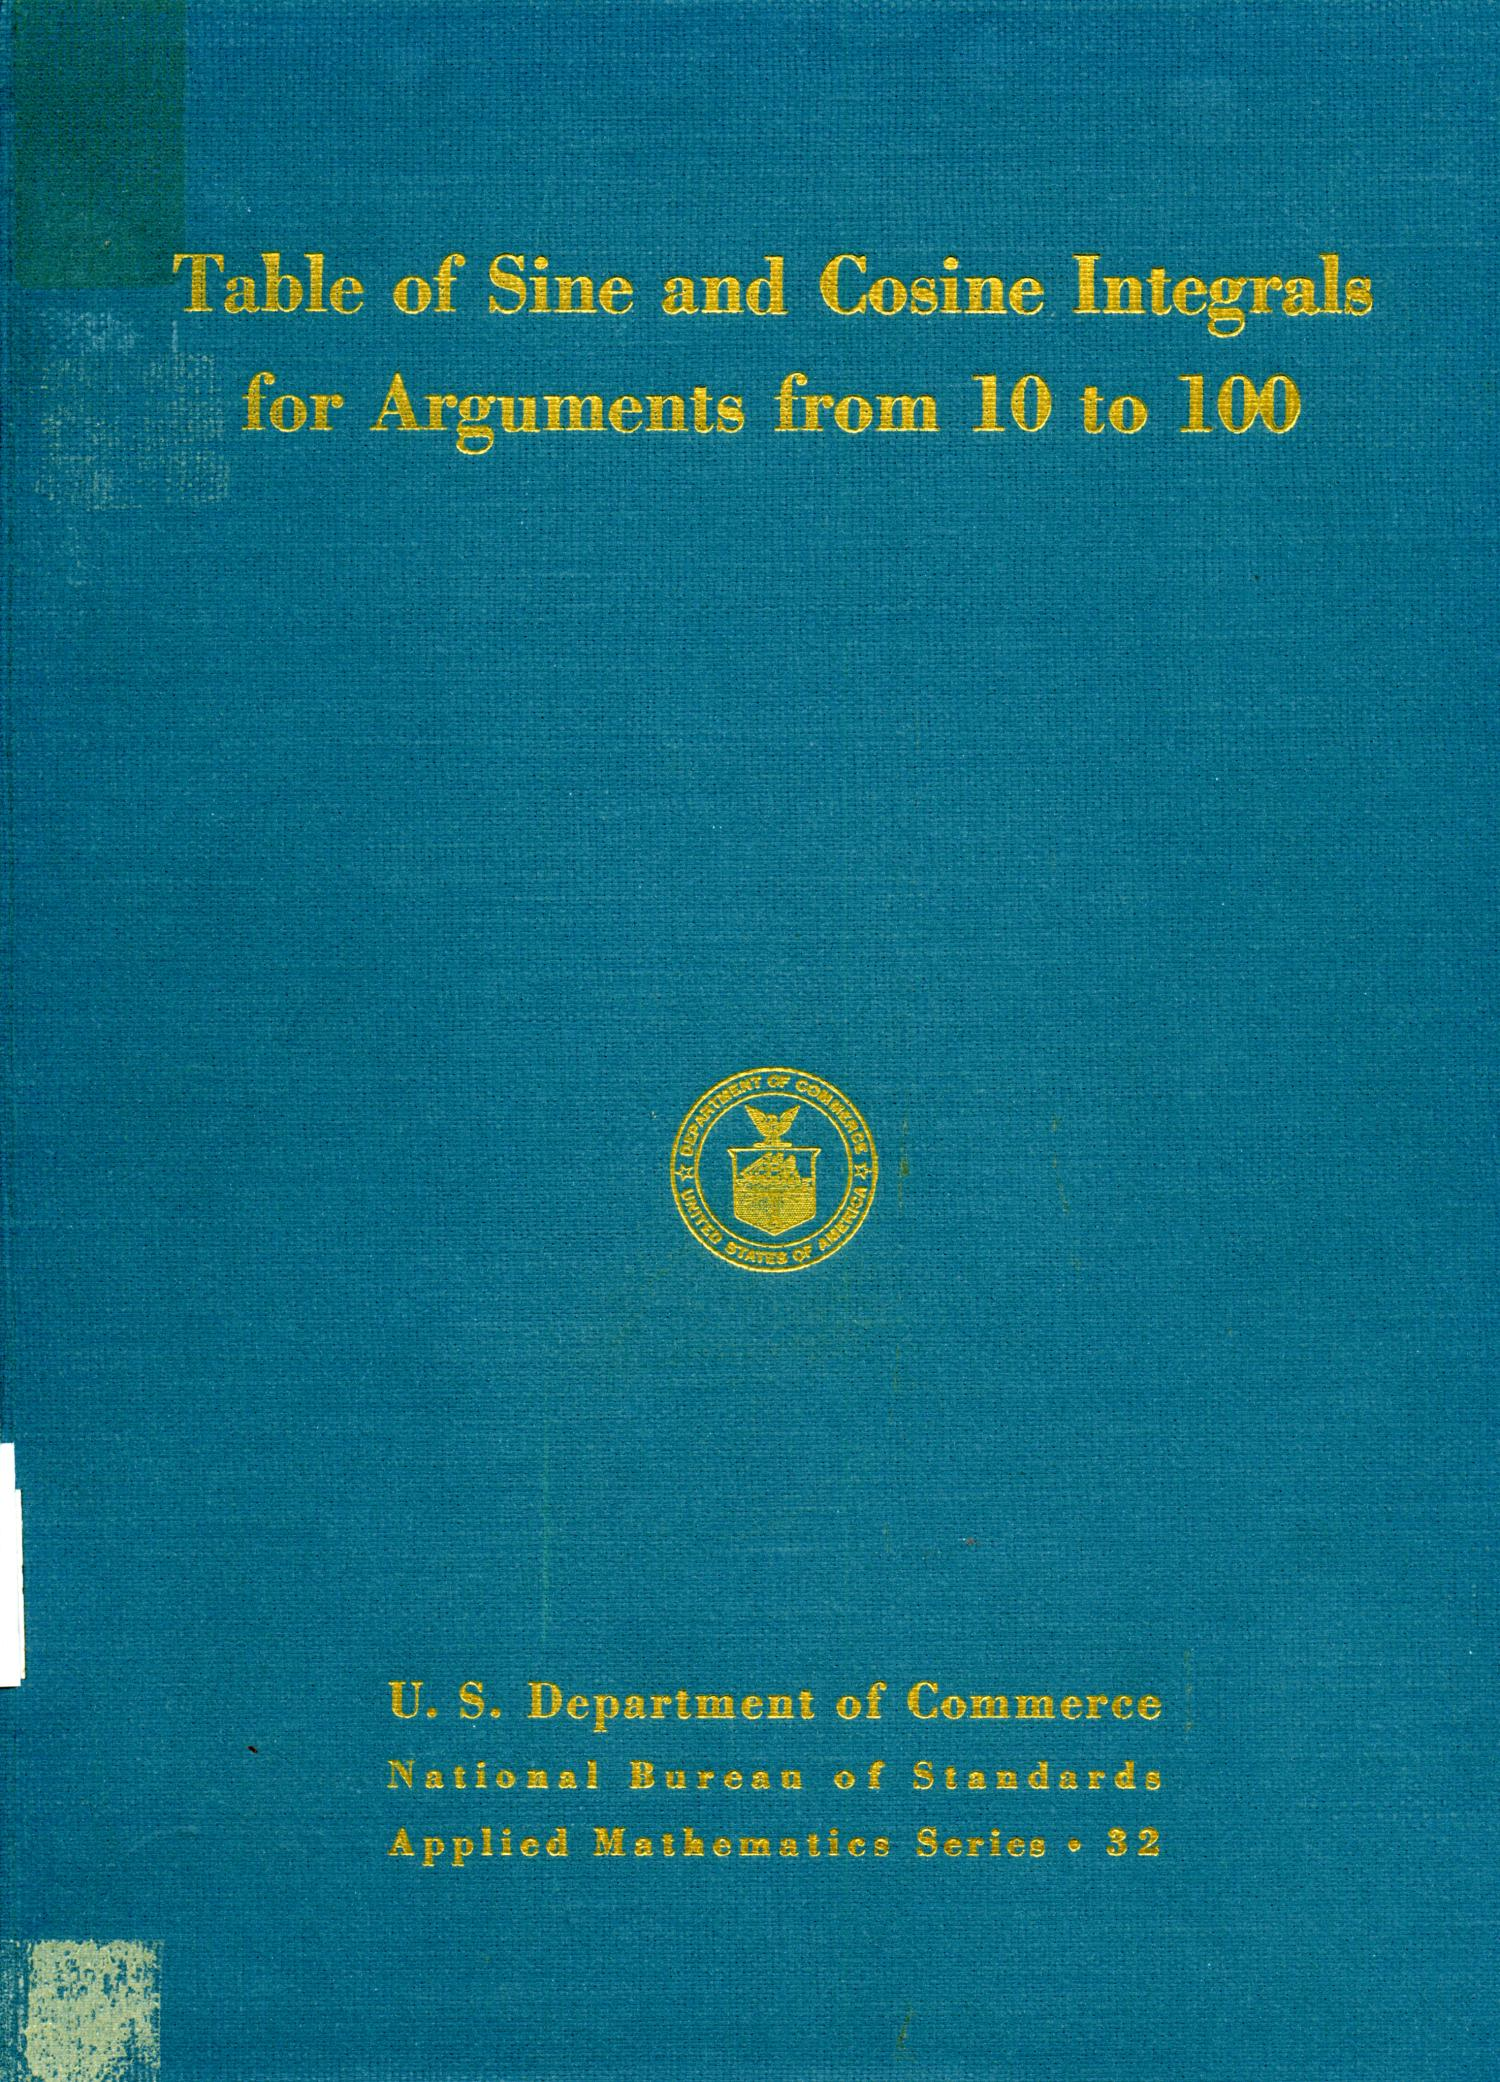 Table of sine and cosine integrals for arguments from 10 to 100                                                                                                      Front Cover